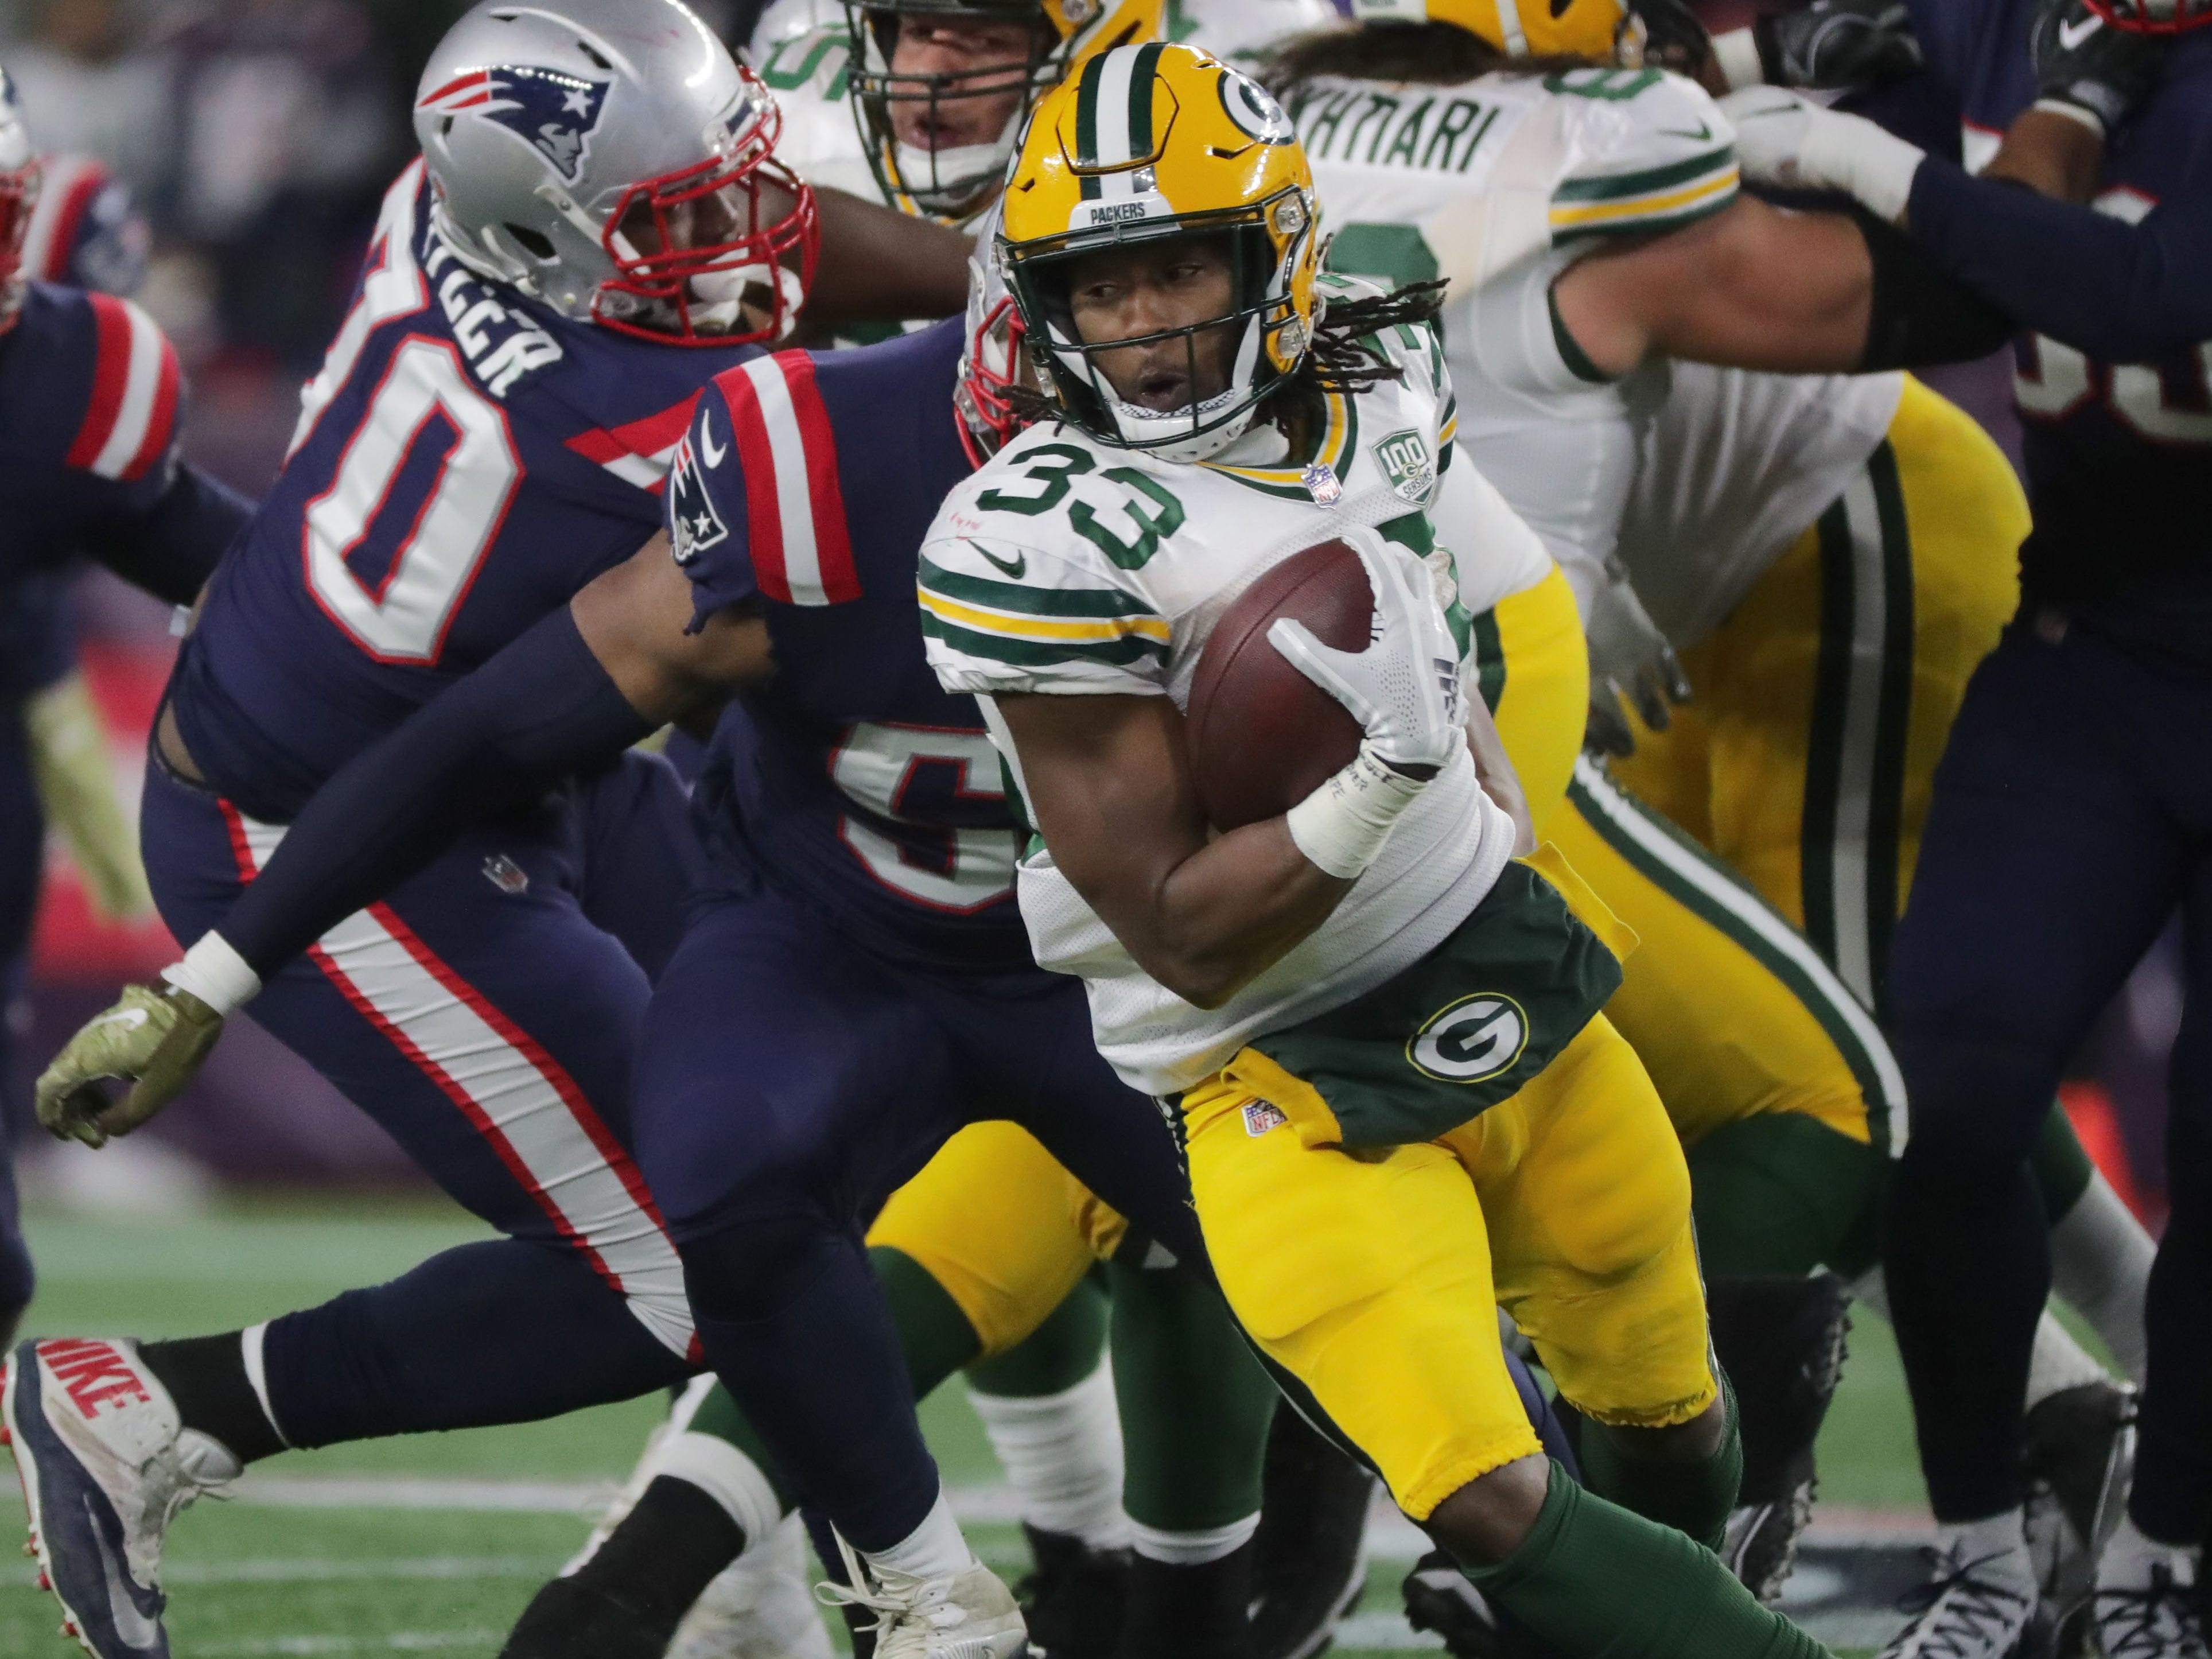 Green Bay Packers running back Aaron Jones spins after getting stopped at the line of scrimmage during the second quarter of their game against the New England Patriots  at Gillette Stadium.